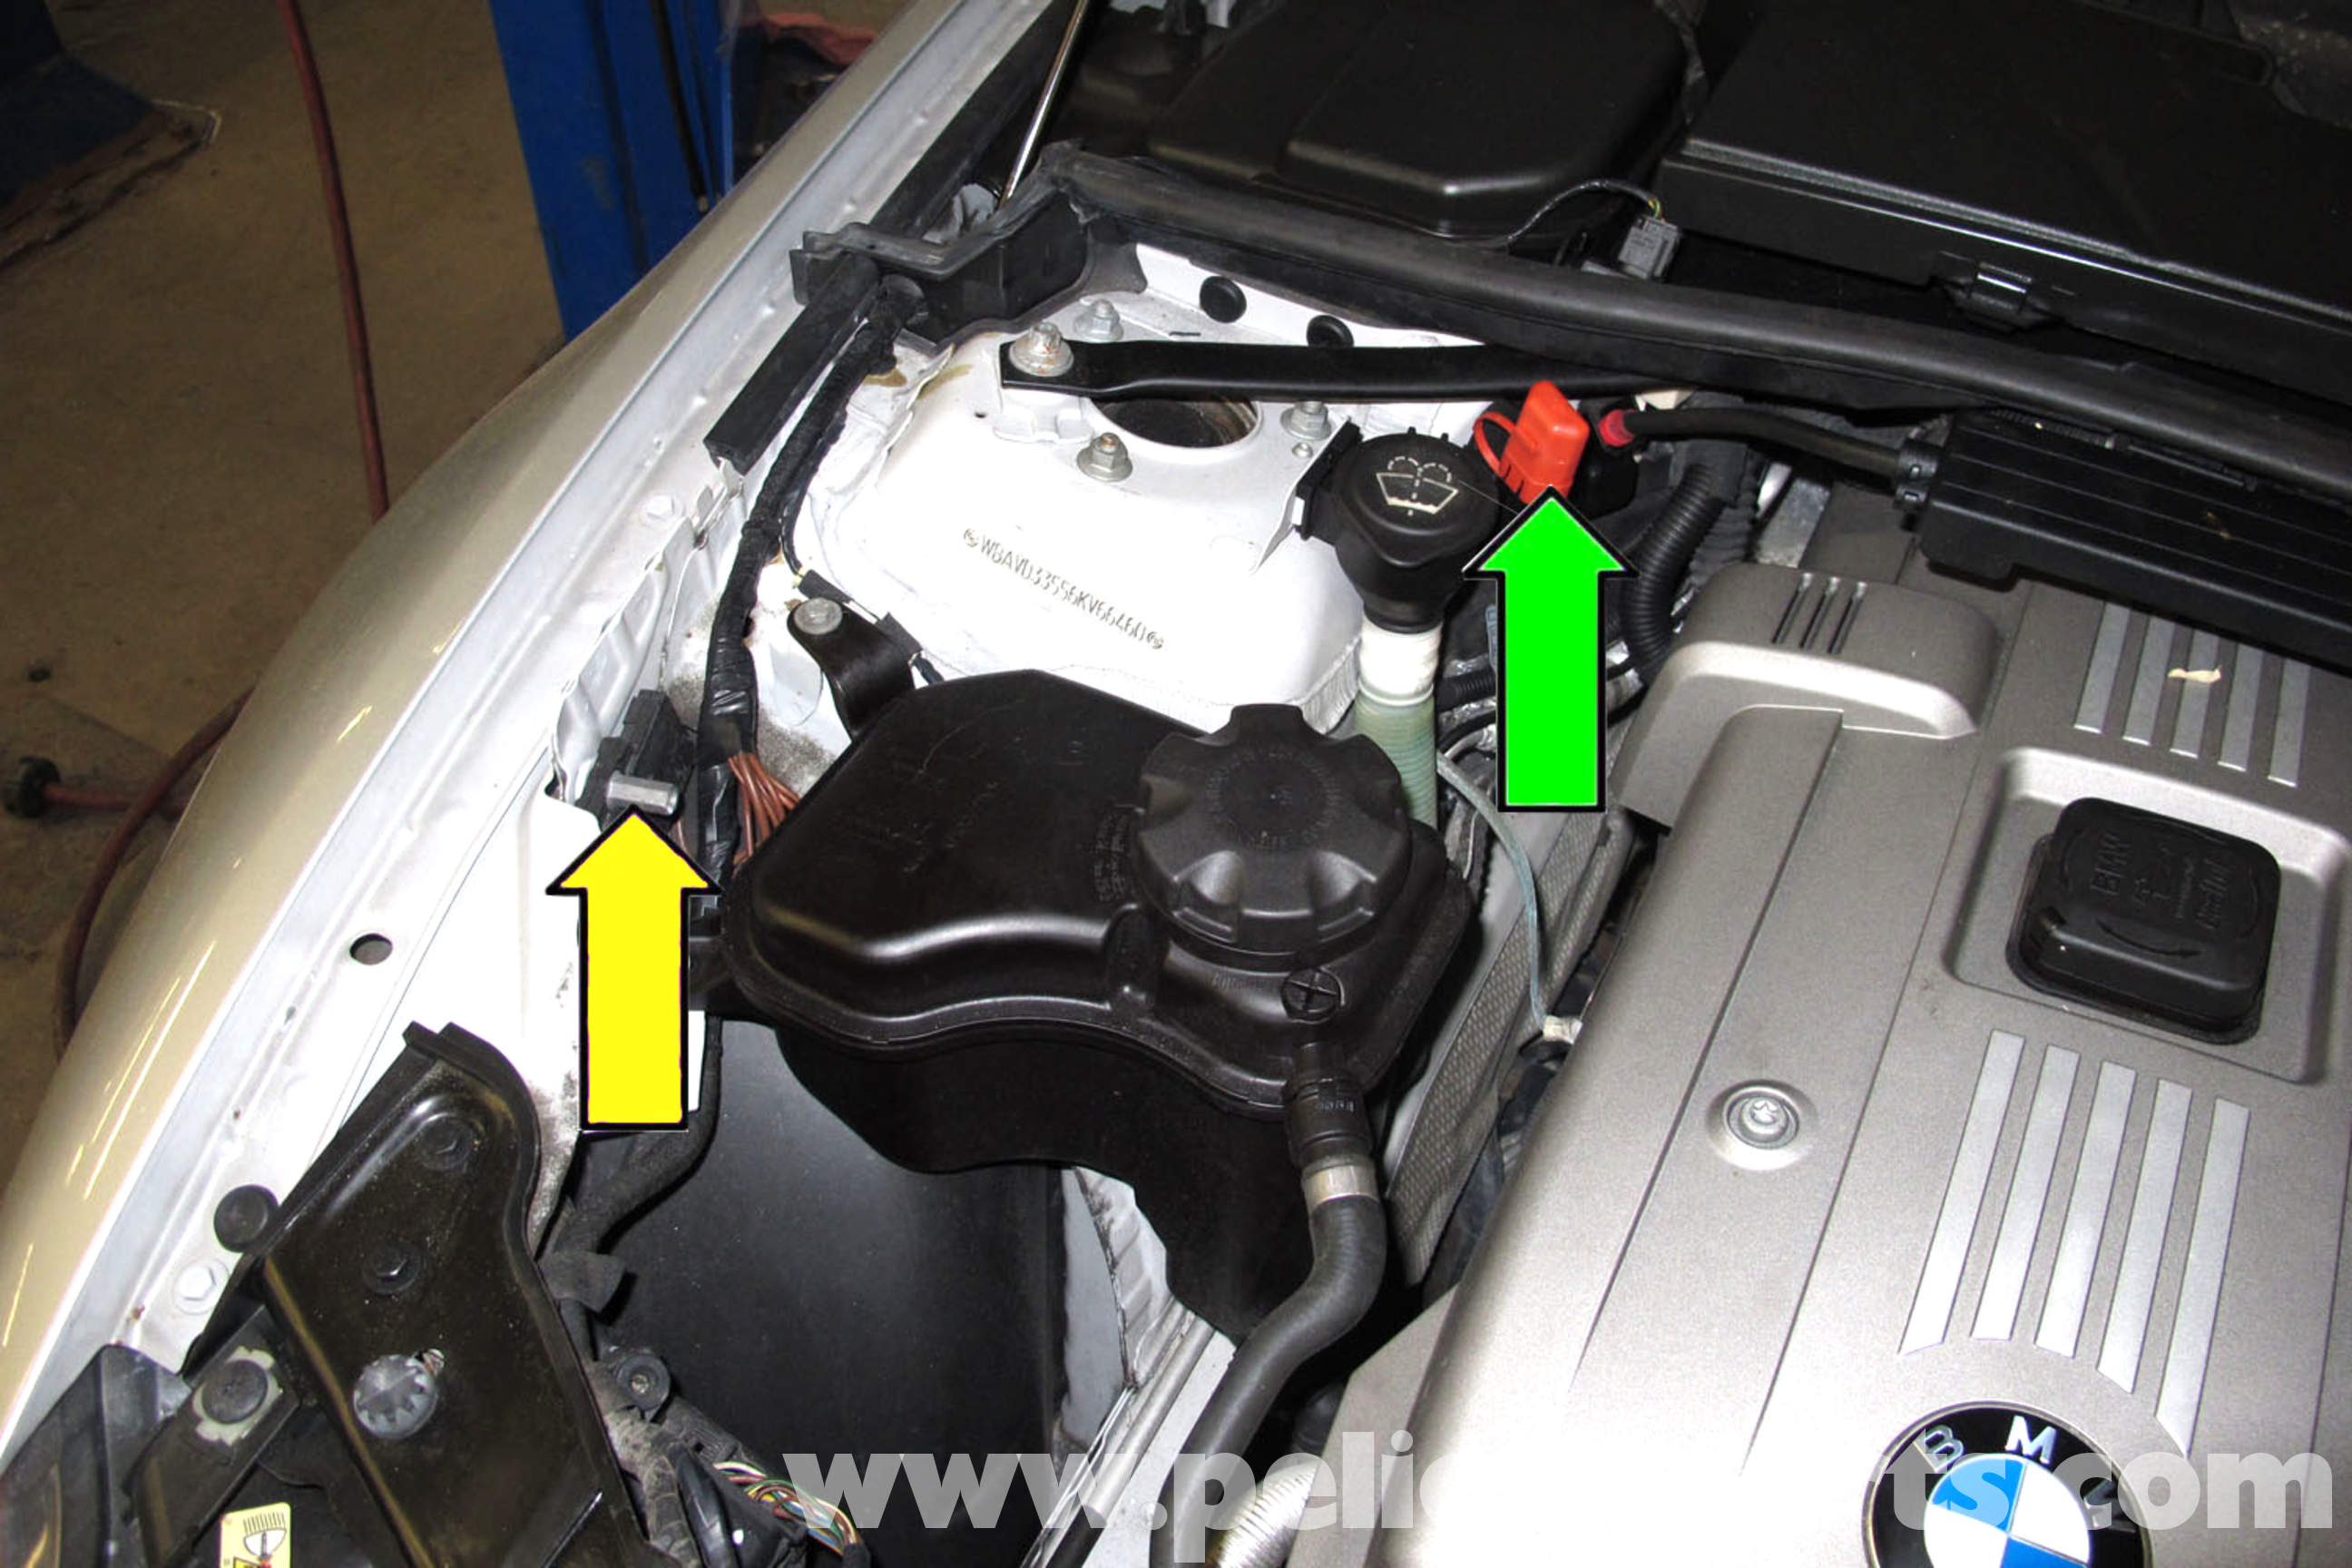 dodge ignition module wiring diagram diagrams house lights bmw e90 battery replacement | e91, e92, e93 pelican parts diy maintenance article